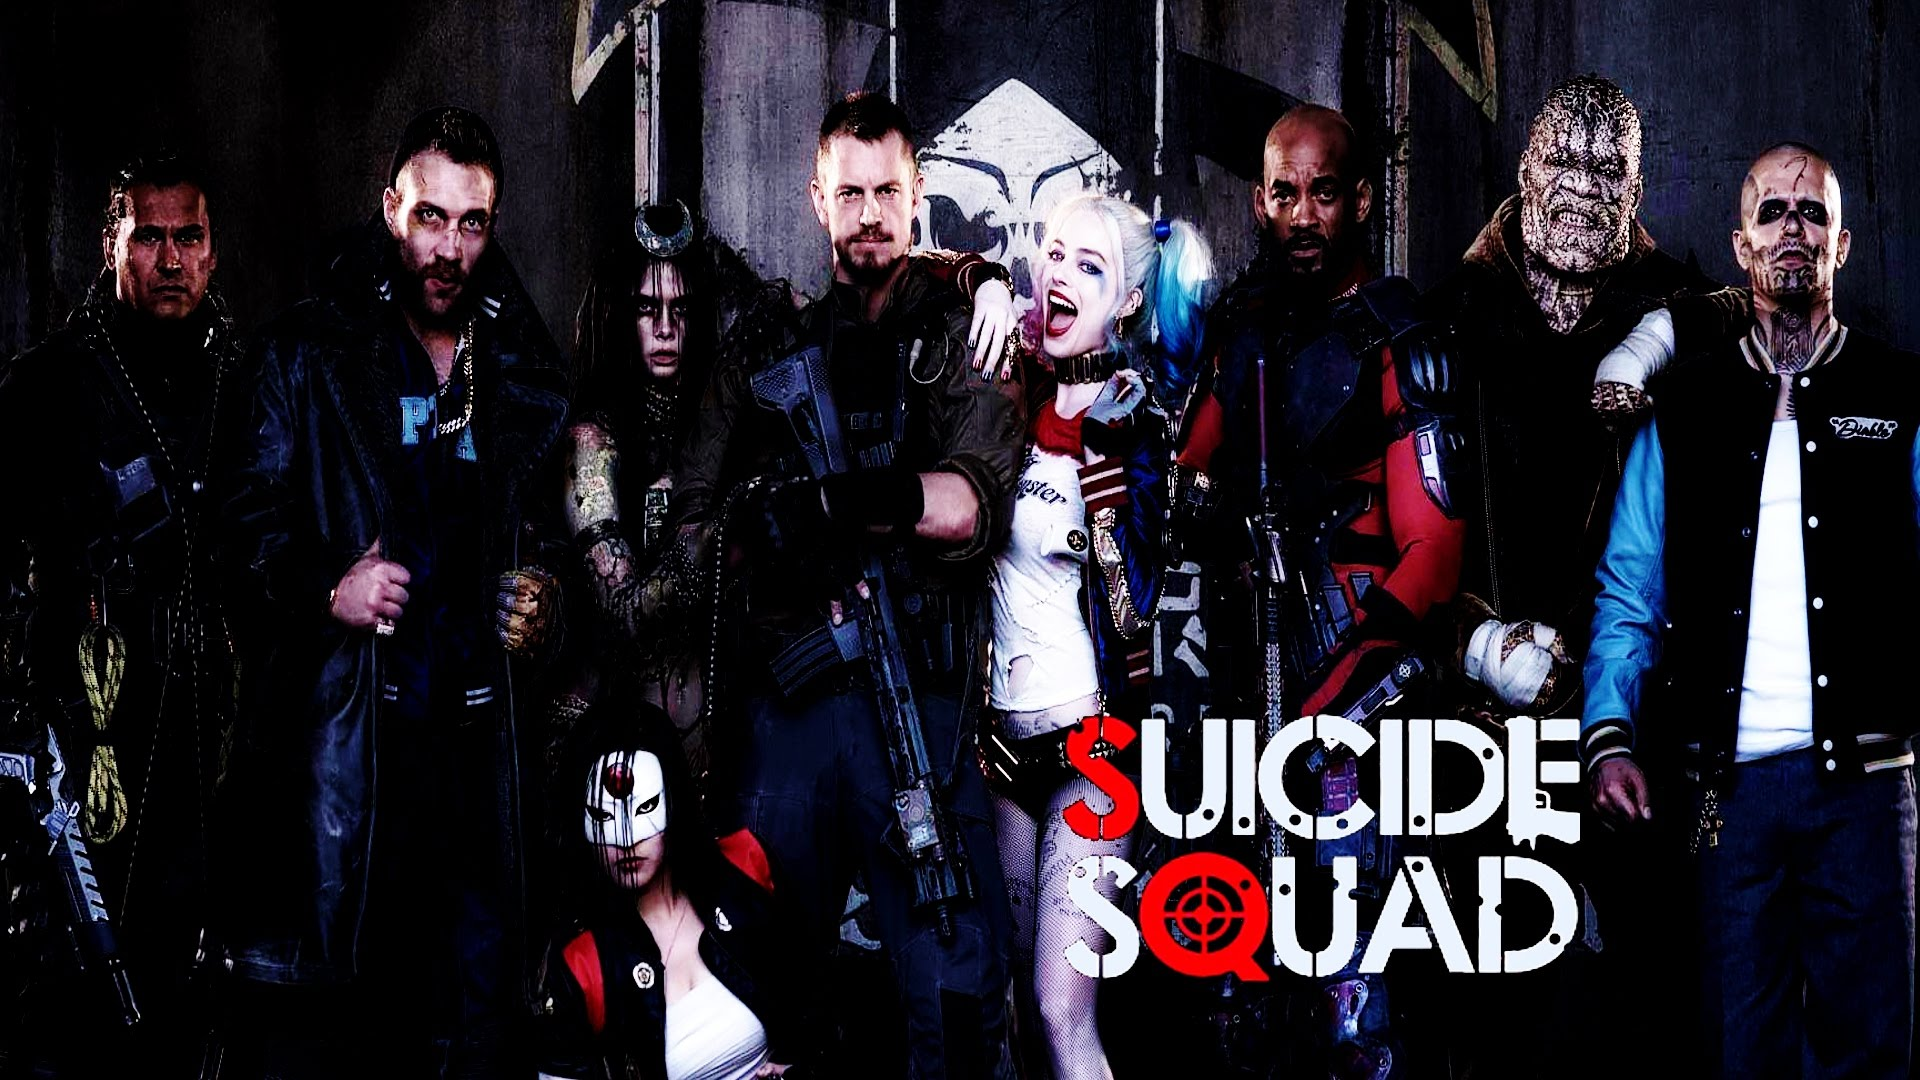 download suicide squad full movie 2016 english free online